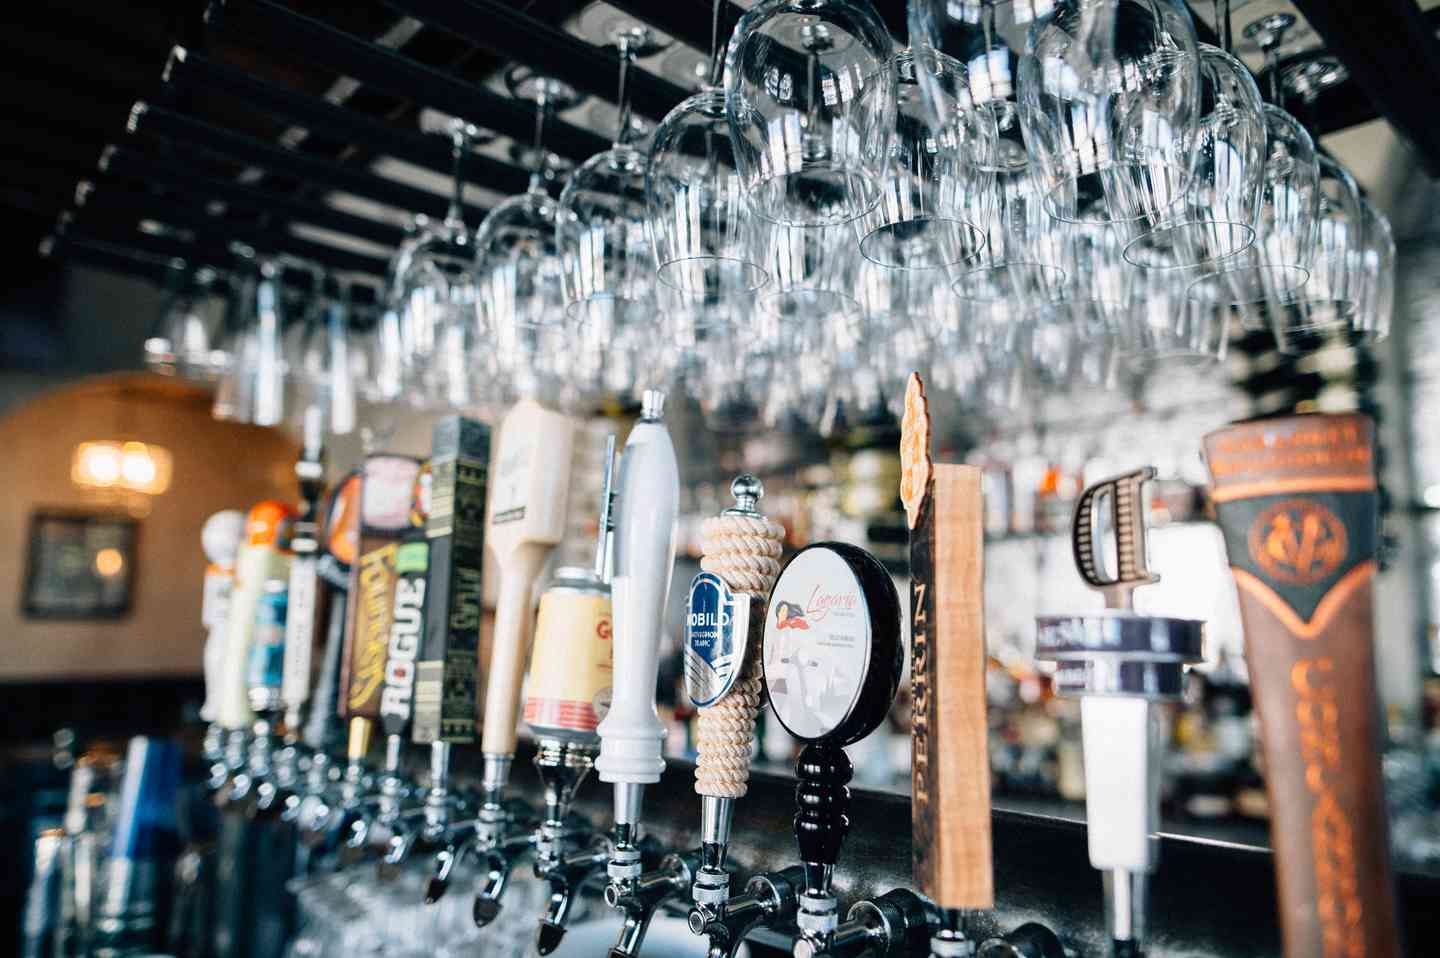 Variety of beers on tap with wine glasses hanging above on a wine rack.